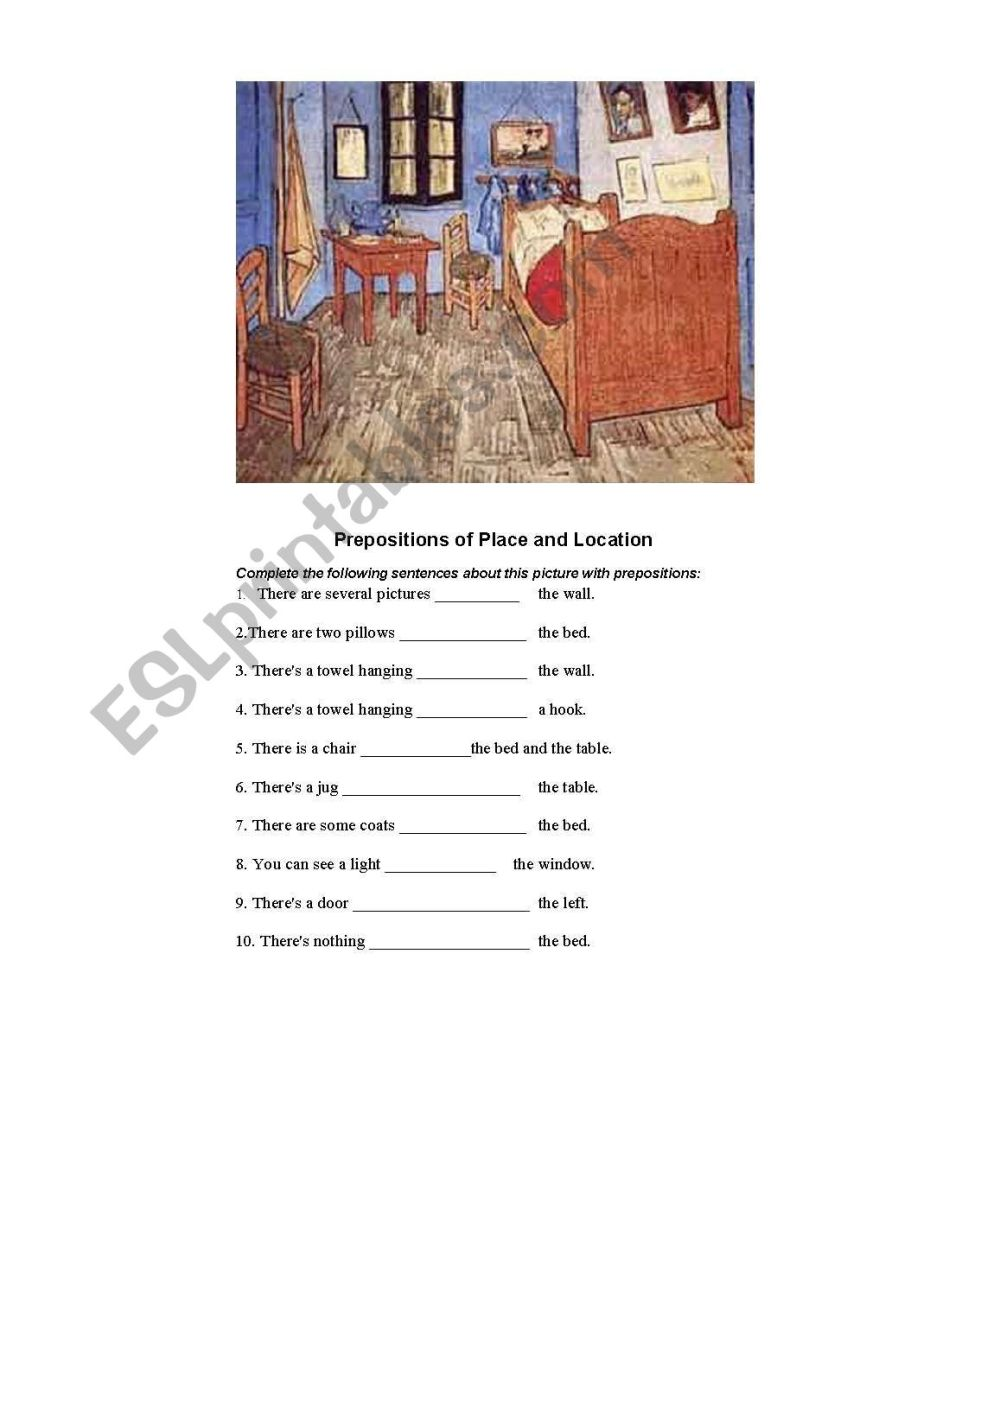 medium resolution of French Prepositions Of Location Worksheet   Printable Worksheets and  Activities for Teachers